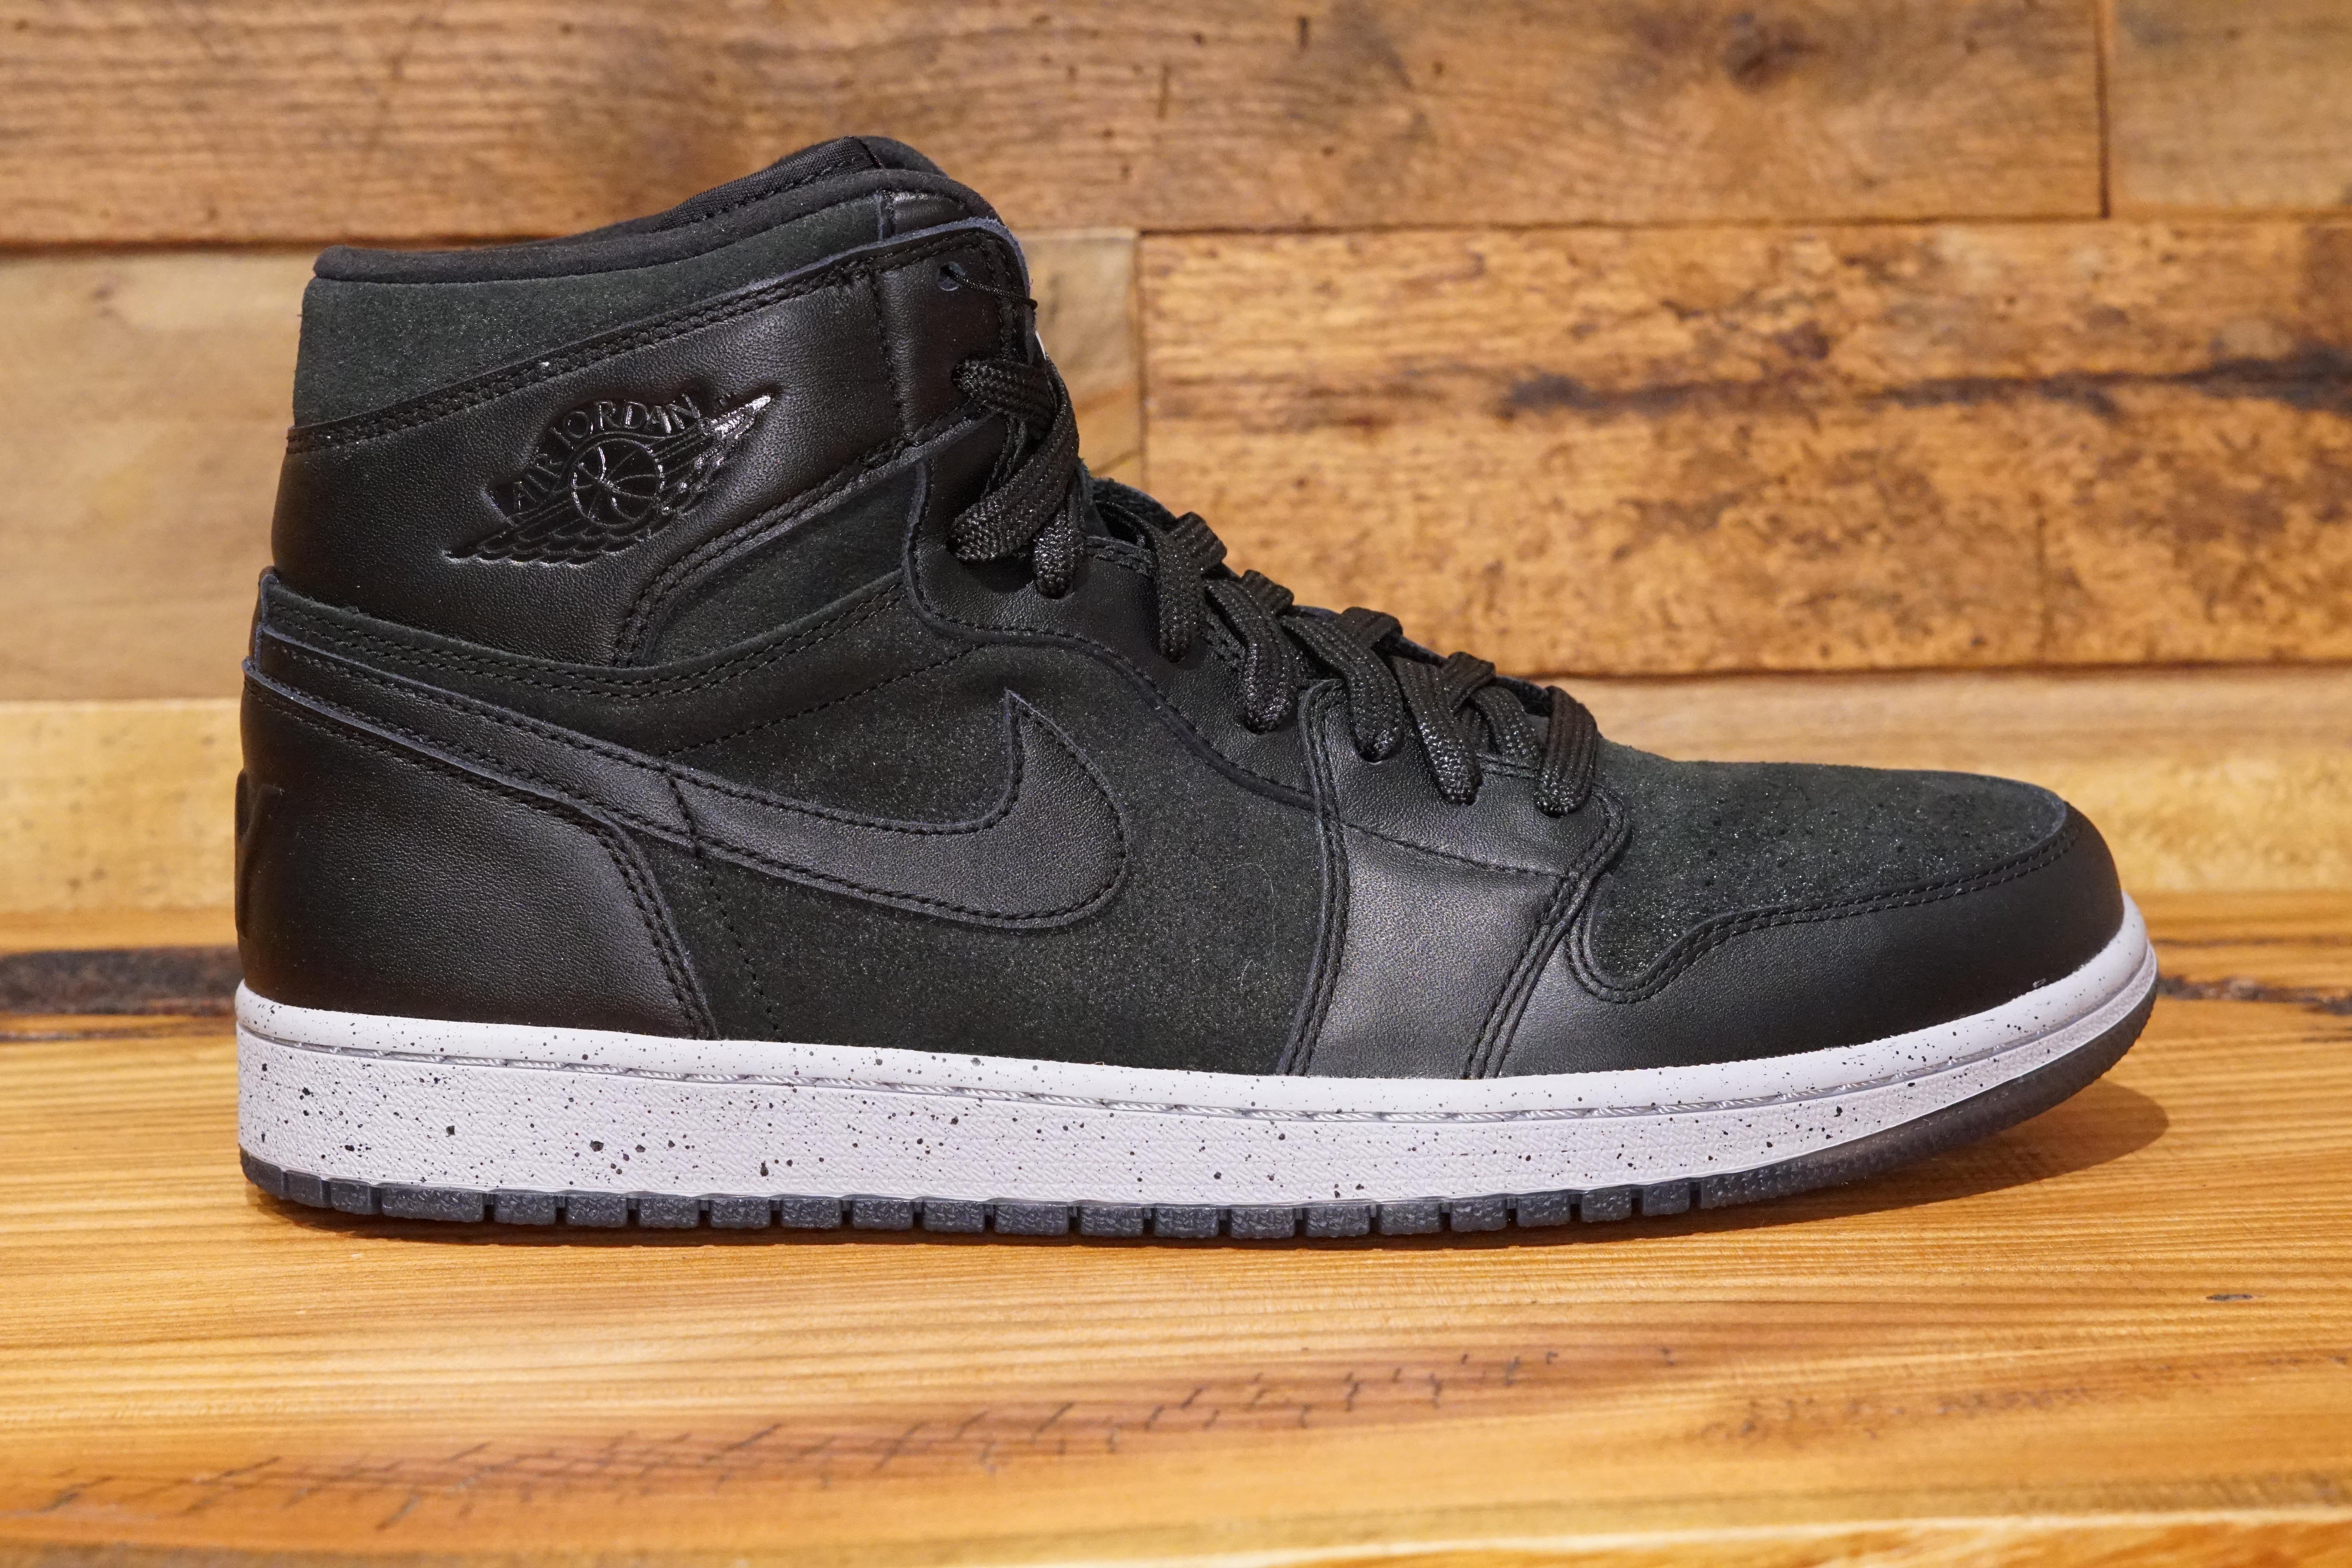 Air Jordan 1 Retro High NYC